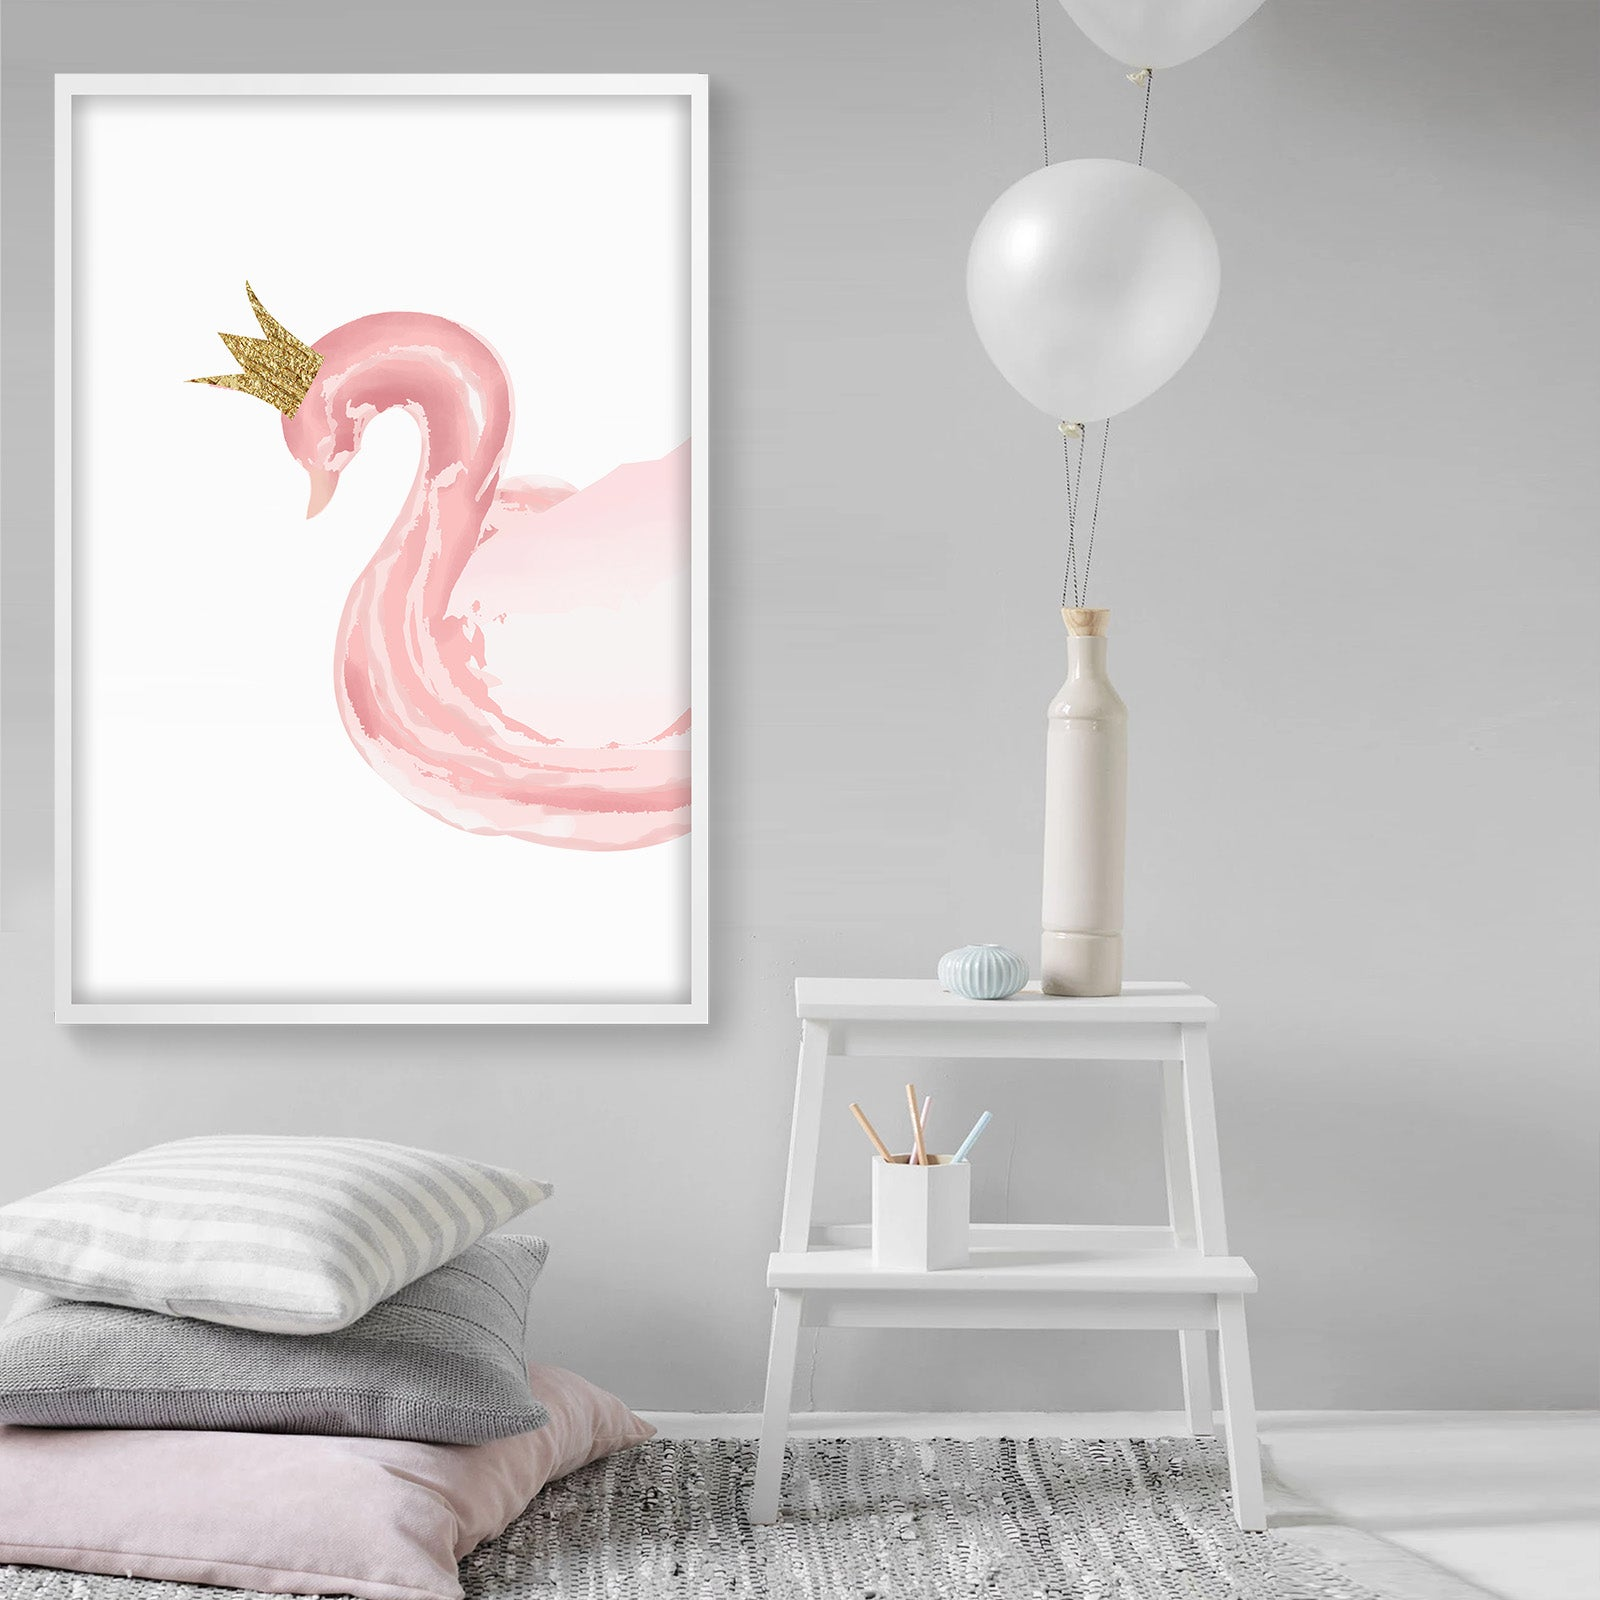 Framed Graphic Art Print  SOAPR0006 -  لوحه فنيه مطبوعه بالايطار - Shop Online Furniture and Home Decor Store in Dubai, UAE at ebarza